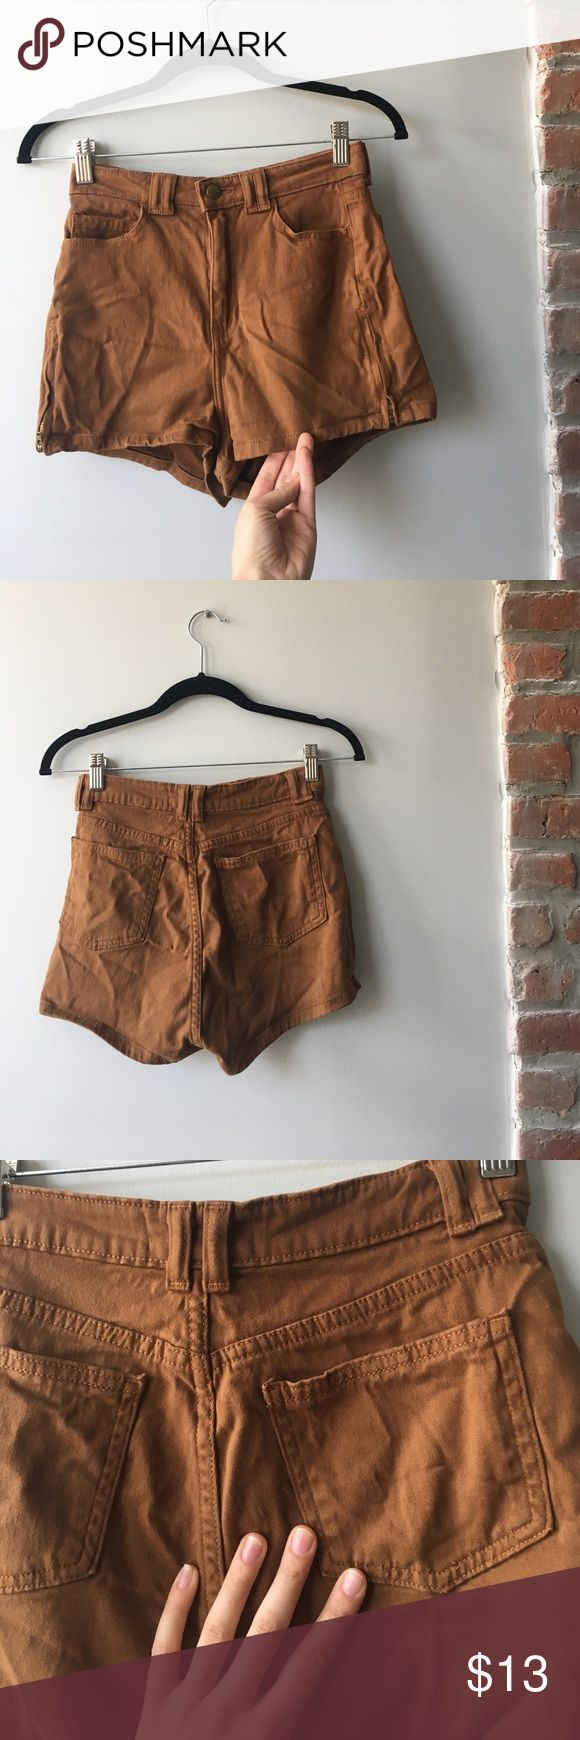 american apparel size zipper shorts (wrinkles from storage) price is negotiable! stretchy denim like material, must go! American Apparel Shorts